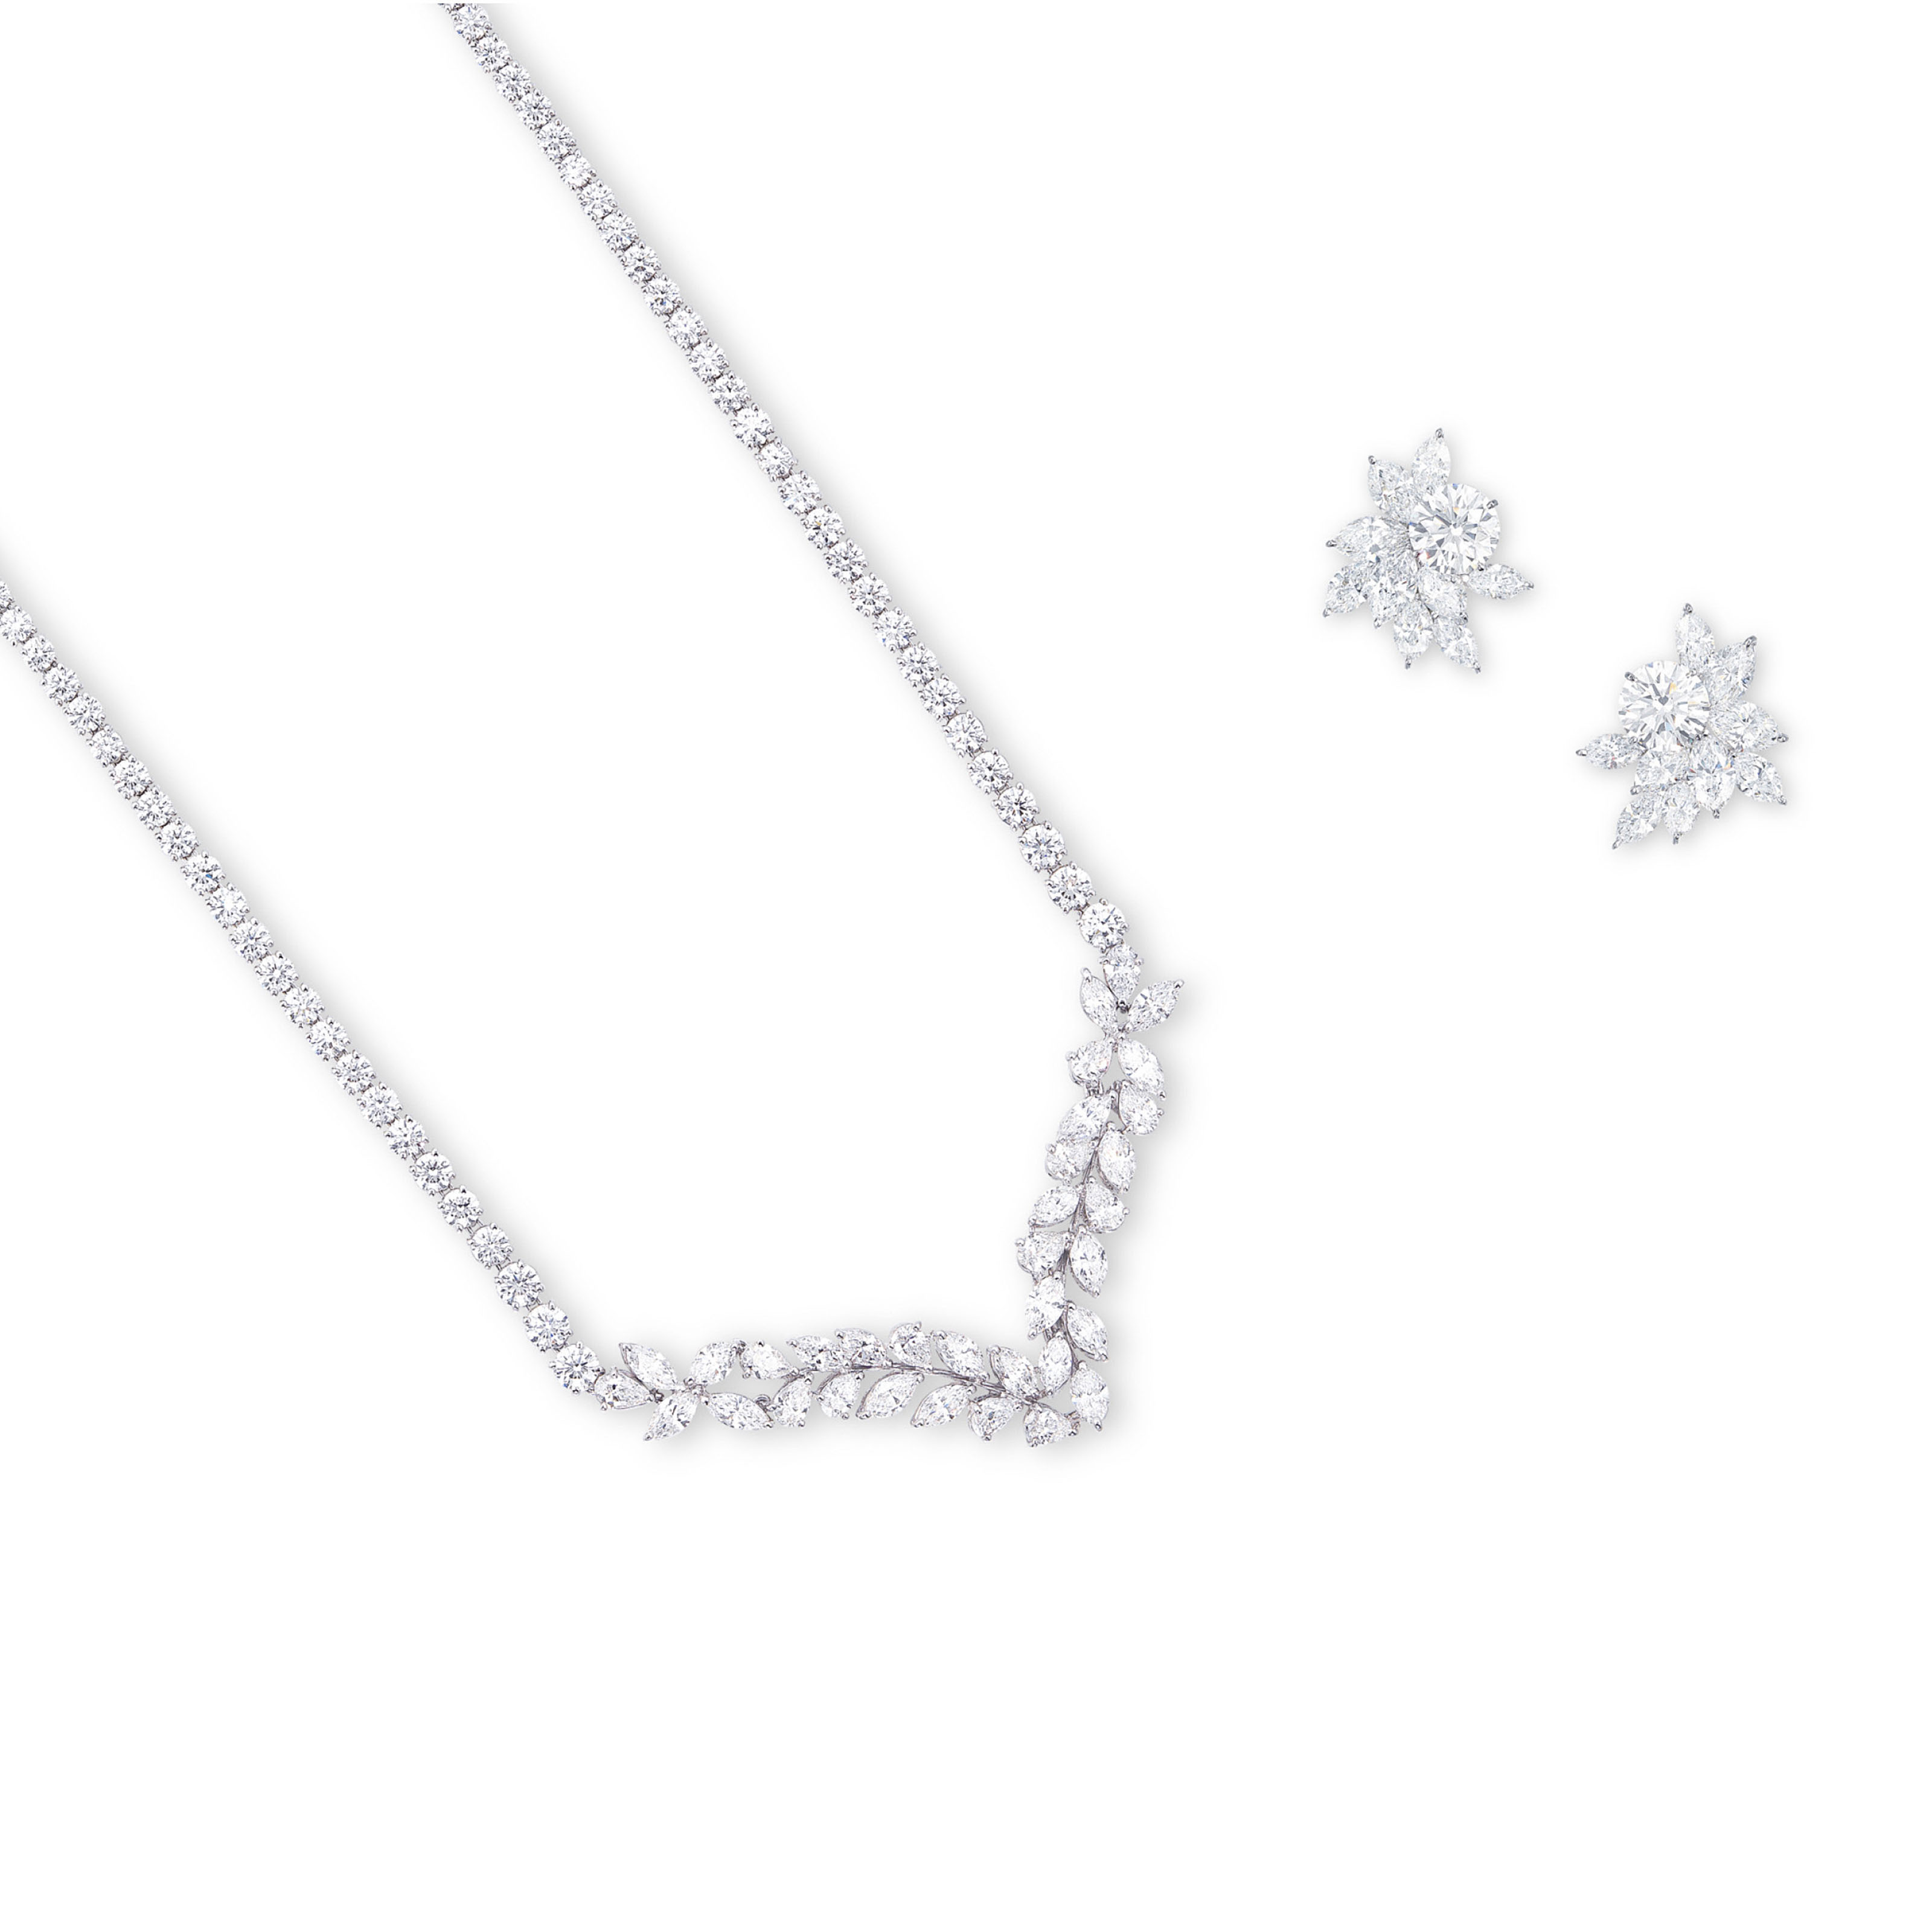 A SUITE OF DIAMOND JEWELLERY, BY MIKIMOTO